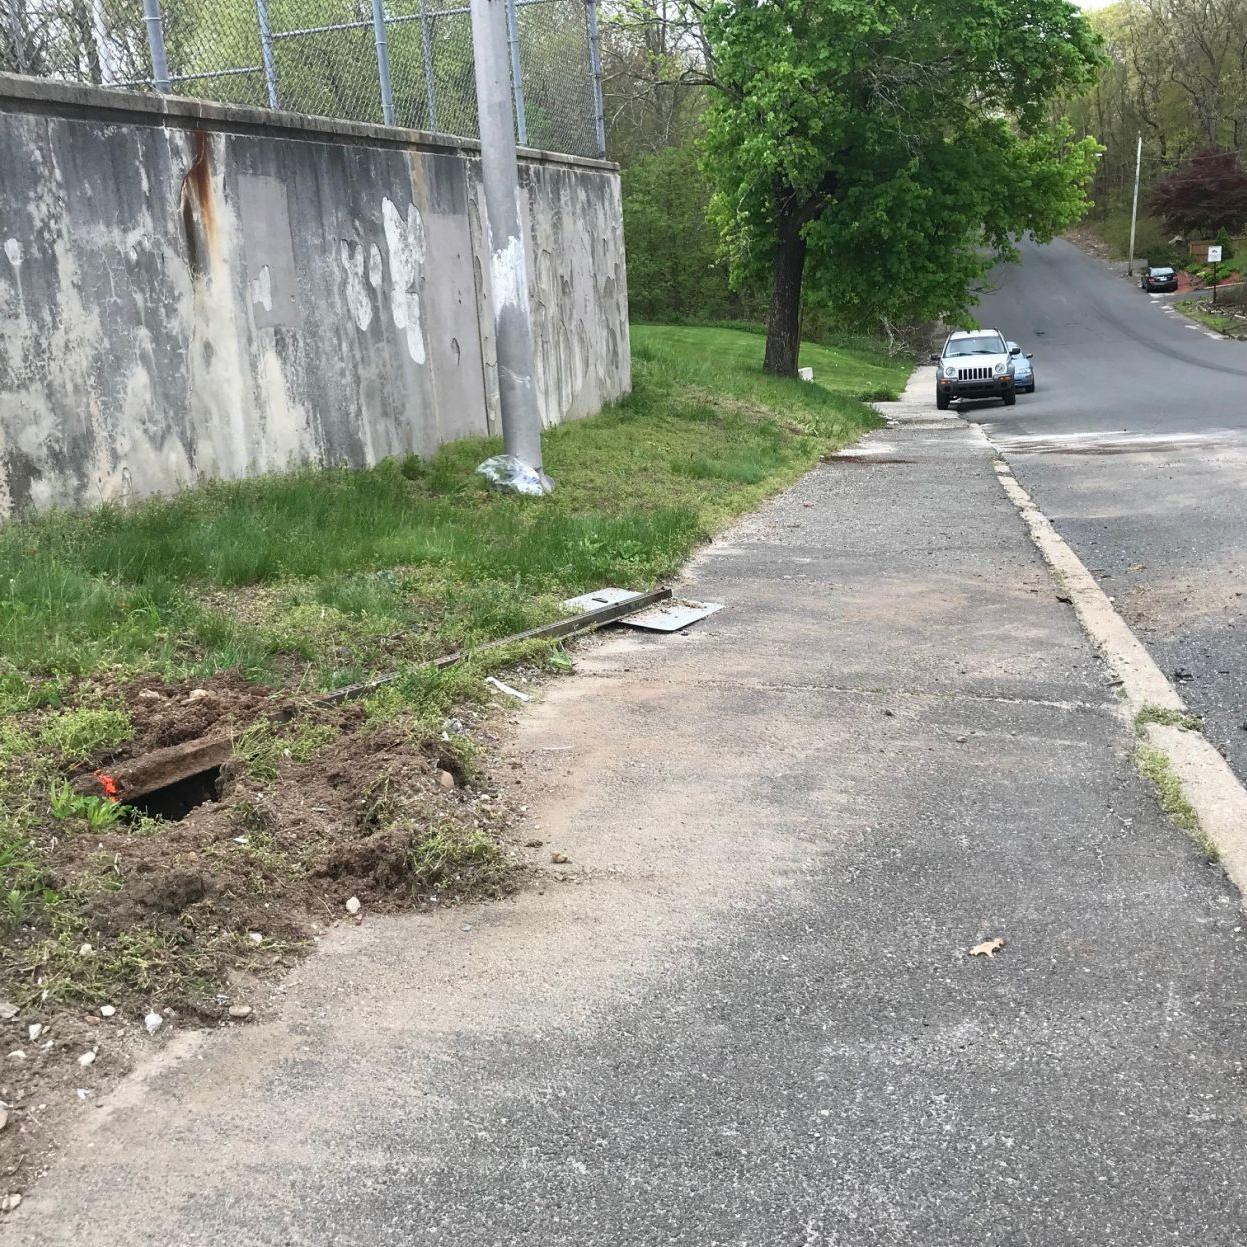 18-year-old girl identified in Waterbury deadly rollover